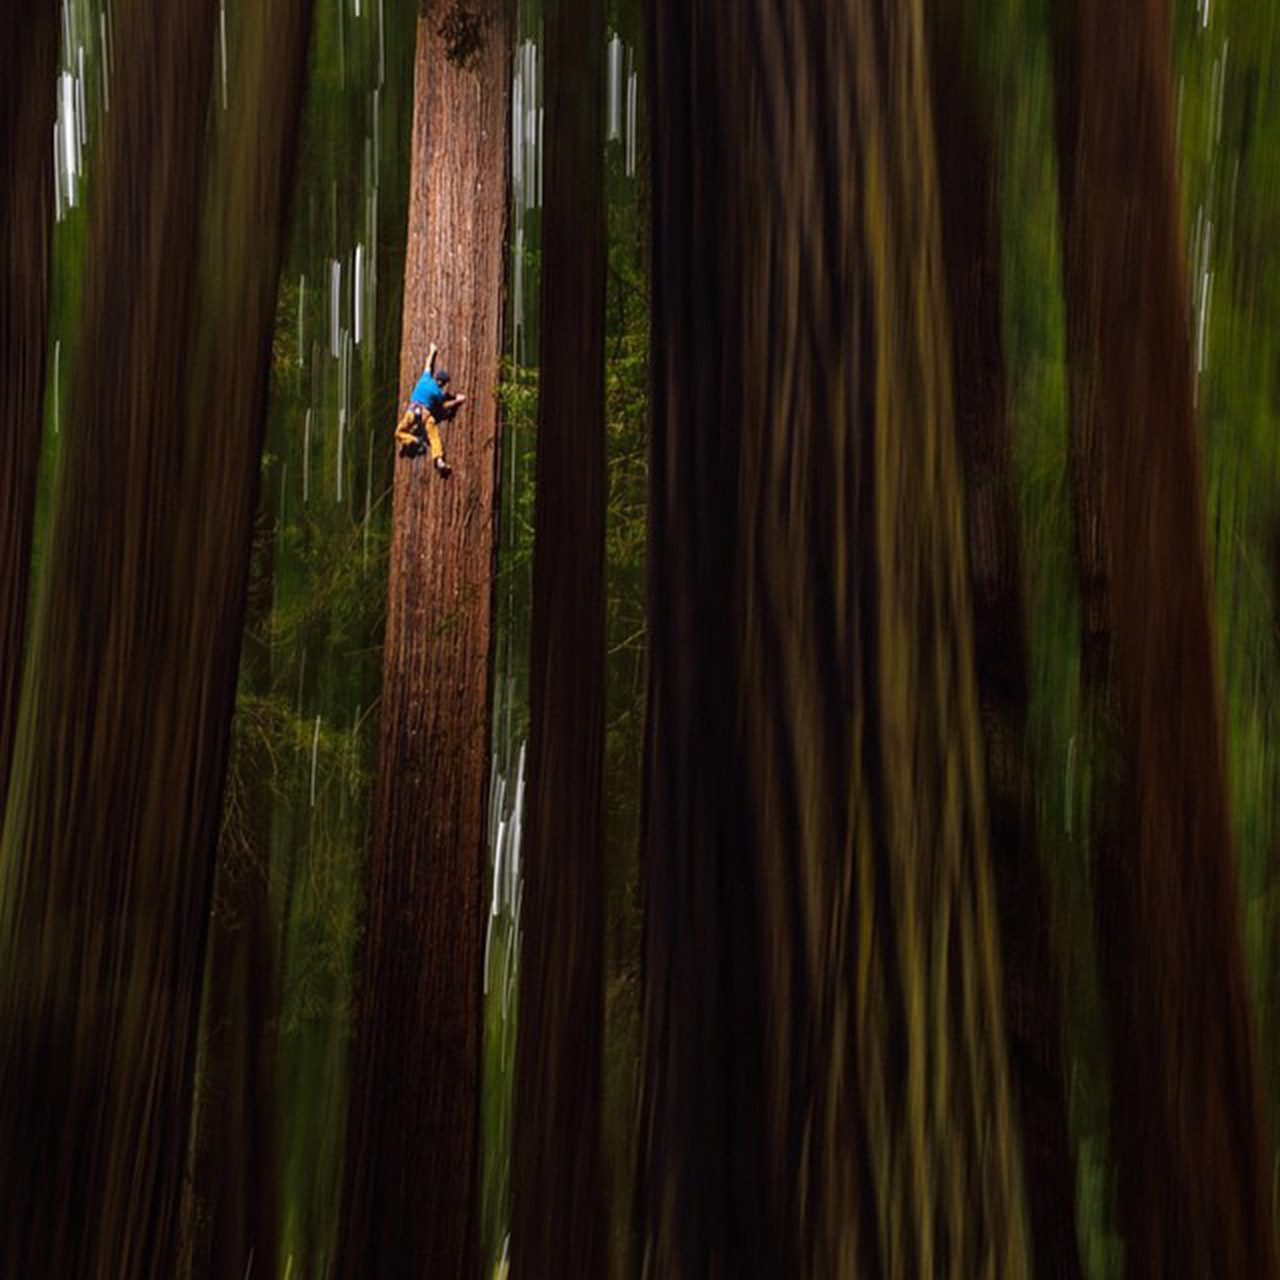 Chris Sharma climbs a redwood tree